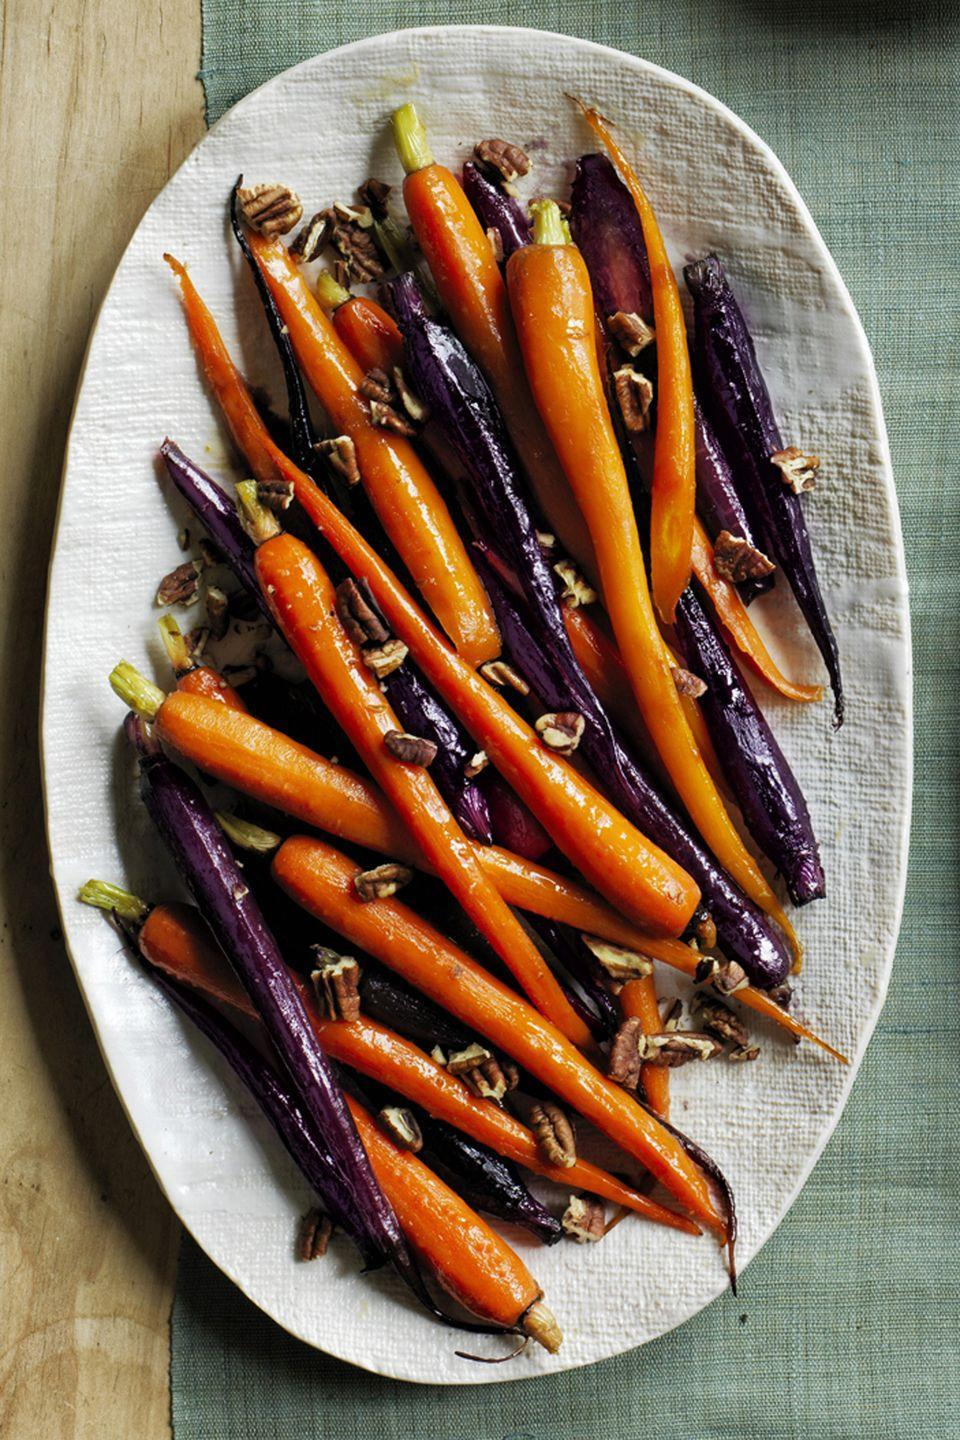 """<p>Soft and sweet, these heritage carrots add contrast to the other savory sides on your menu. </p><p><em><strong><a href=""""https://www.womansday.com/food-recipes/food-drinks/recipes/a60500/pecan-pie-glazed-carrots-recipe/"""" rel=""""nofollow noopener"""" target=""""_blank"""" data-ylk=""""slk:Get the Pecan Pie Glazed Carrots recipe."""" class=""""link rapid-noclick-resp"""">Get the Pecan Pie Glazed Carrots recipe.</a></strong></em></p>"""